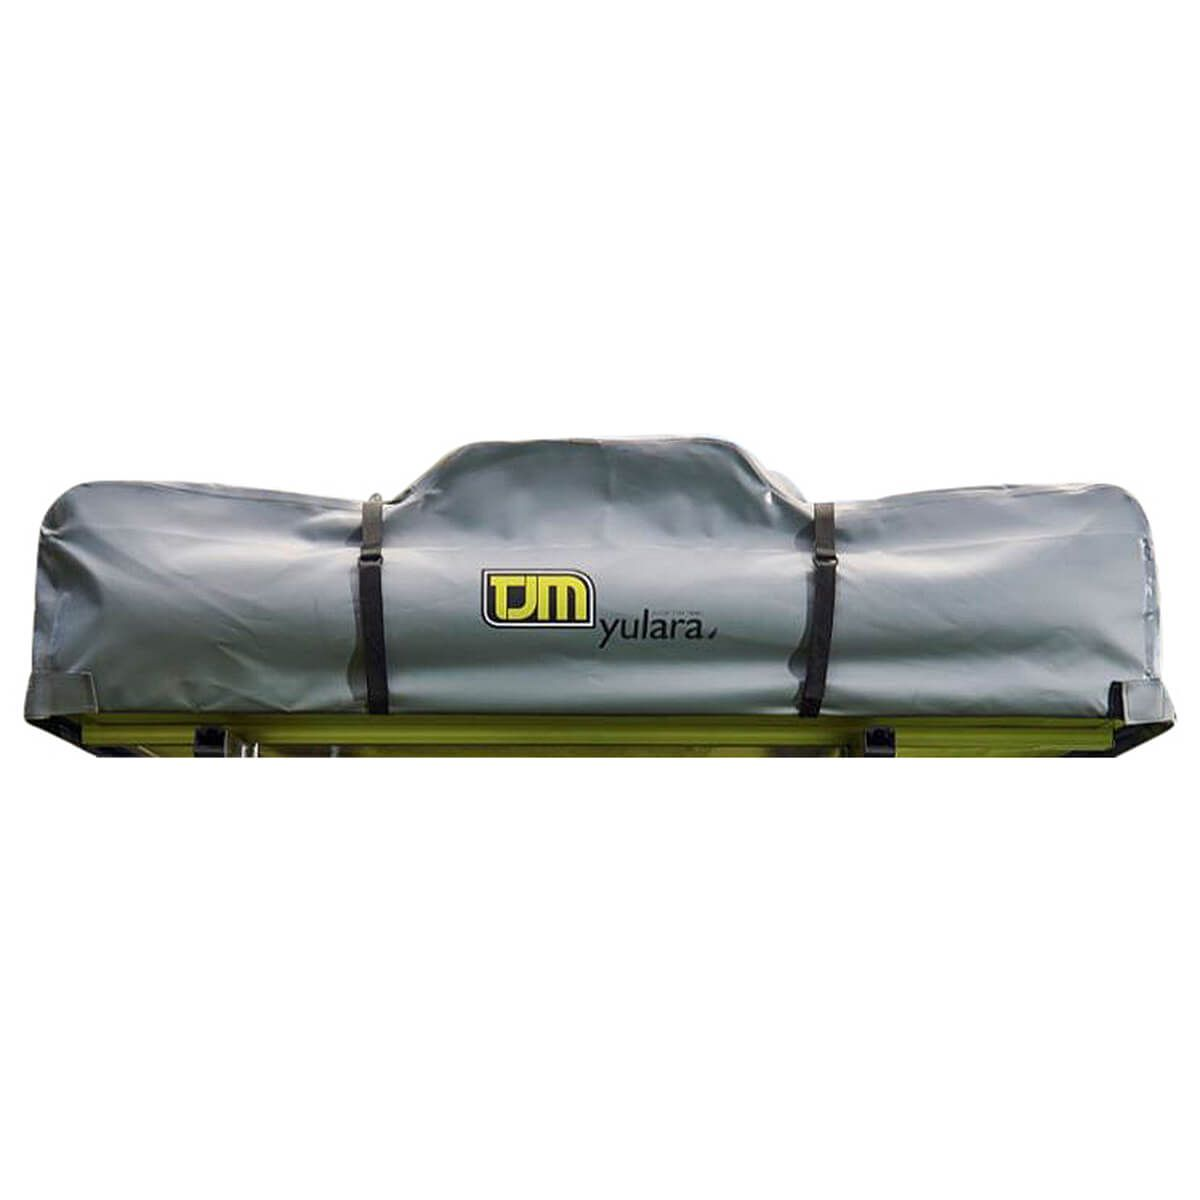 TJM Yulara Roof Top Tent Cover